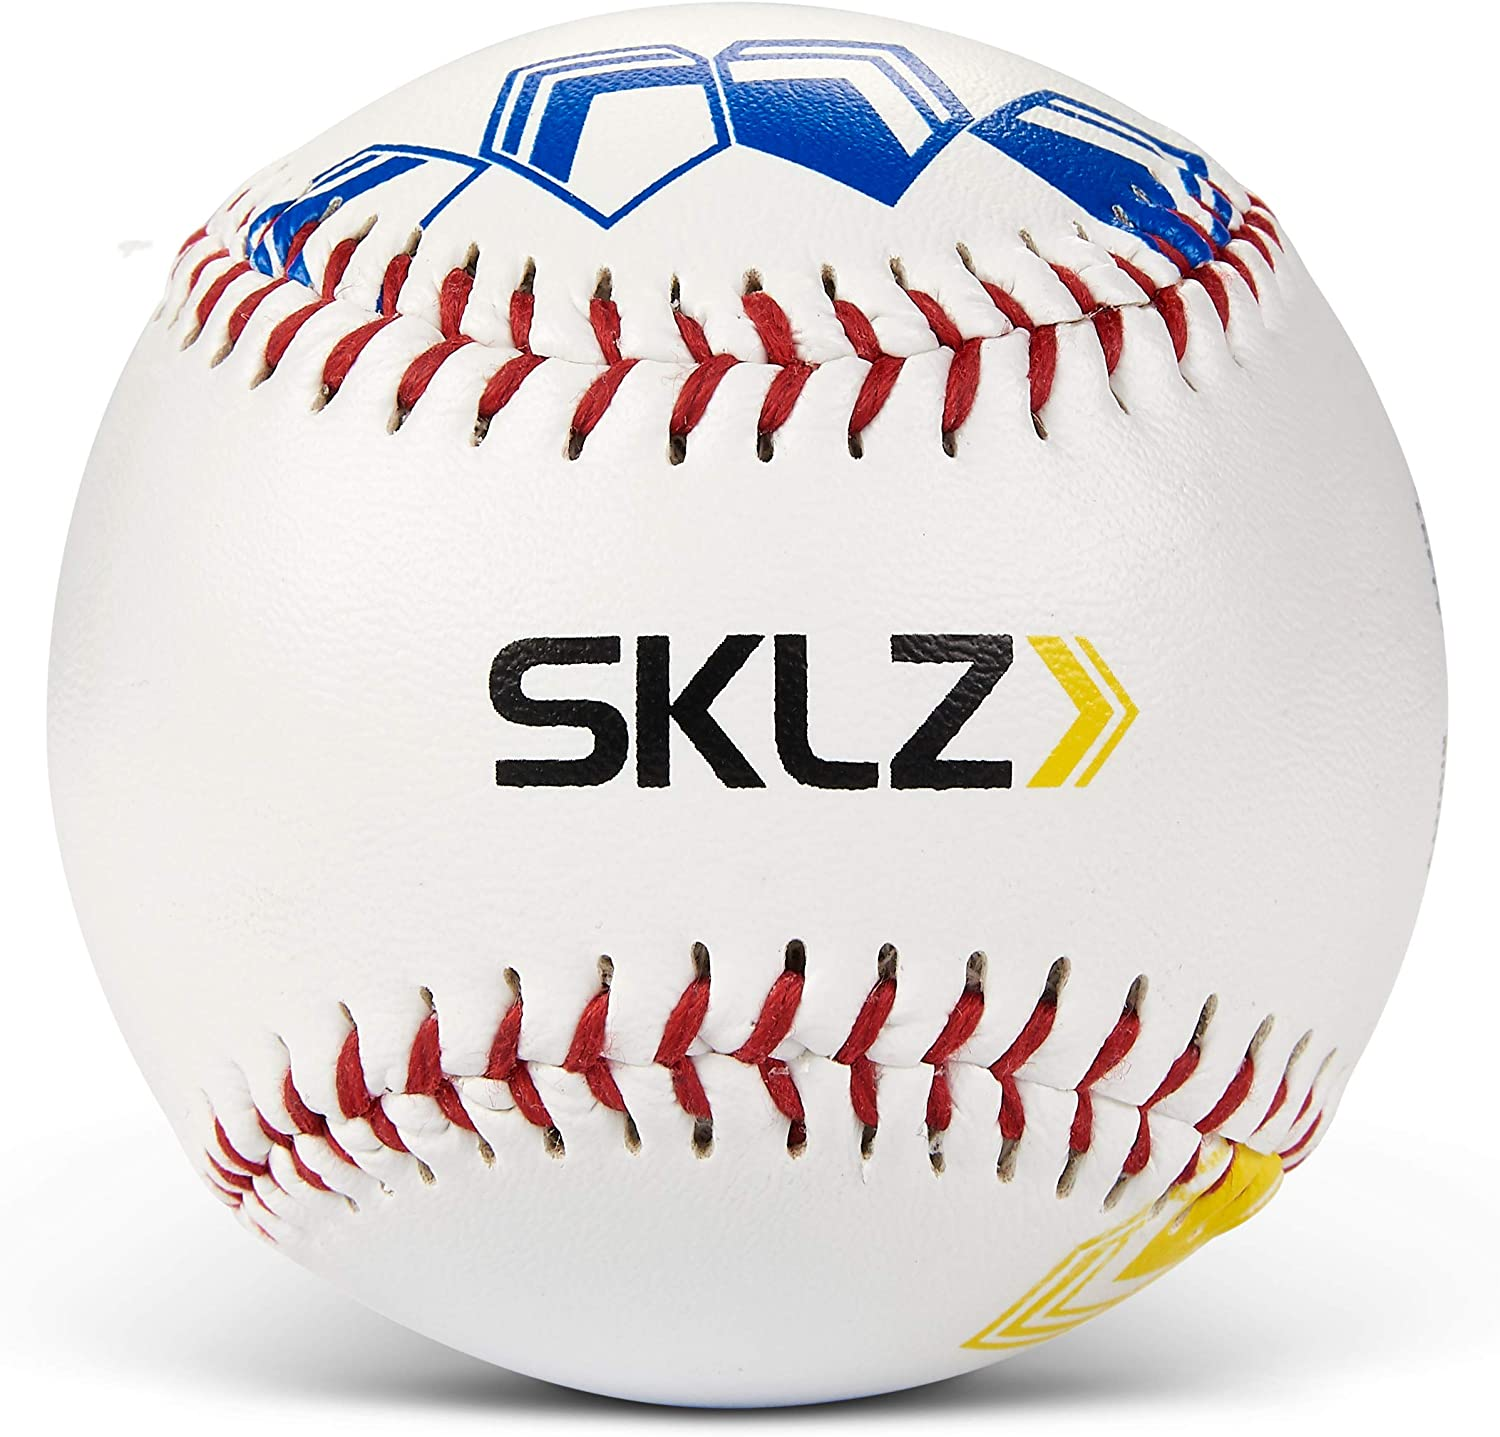 SKLZ Charlotte Mall Pitch Training Direct stock discount Baseball Finger with Placement Markers